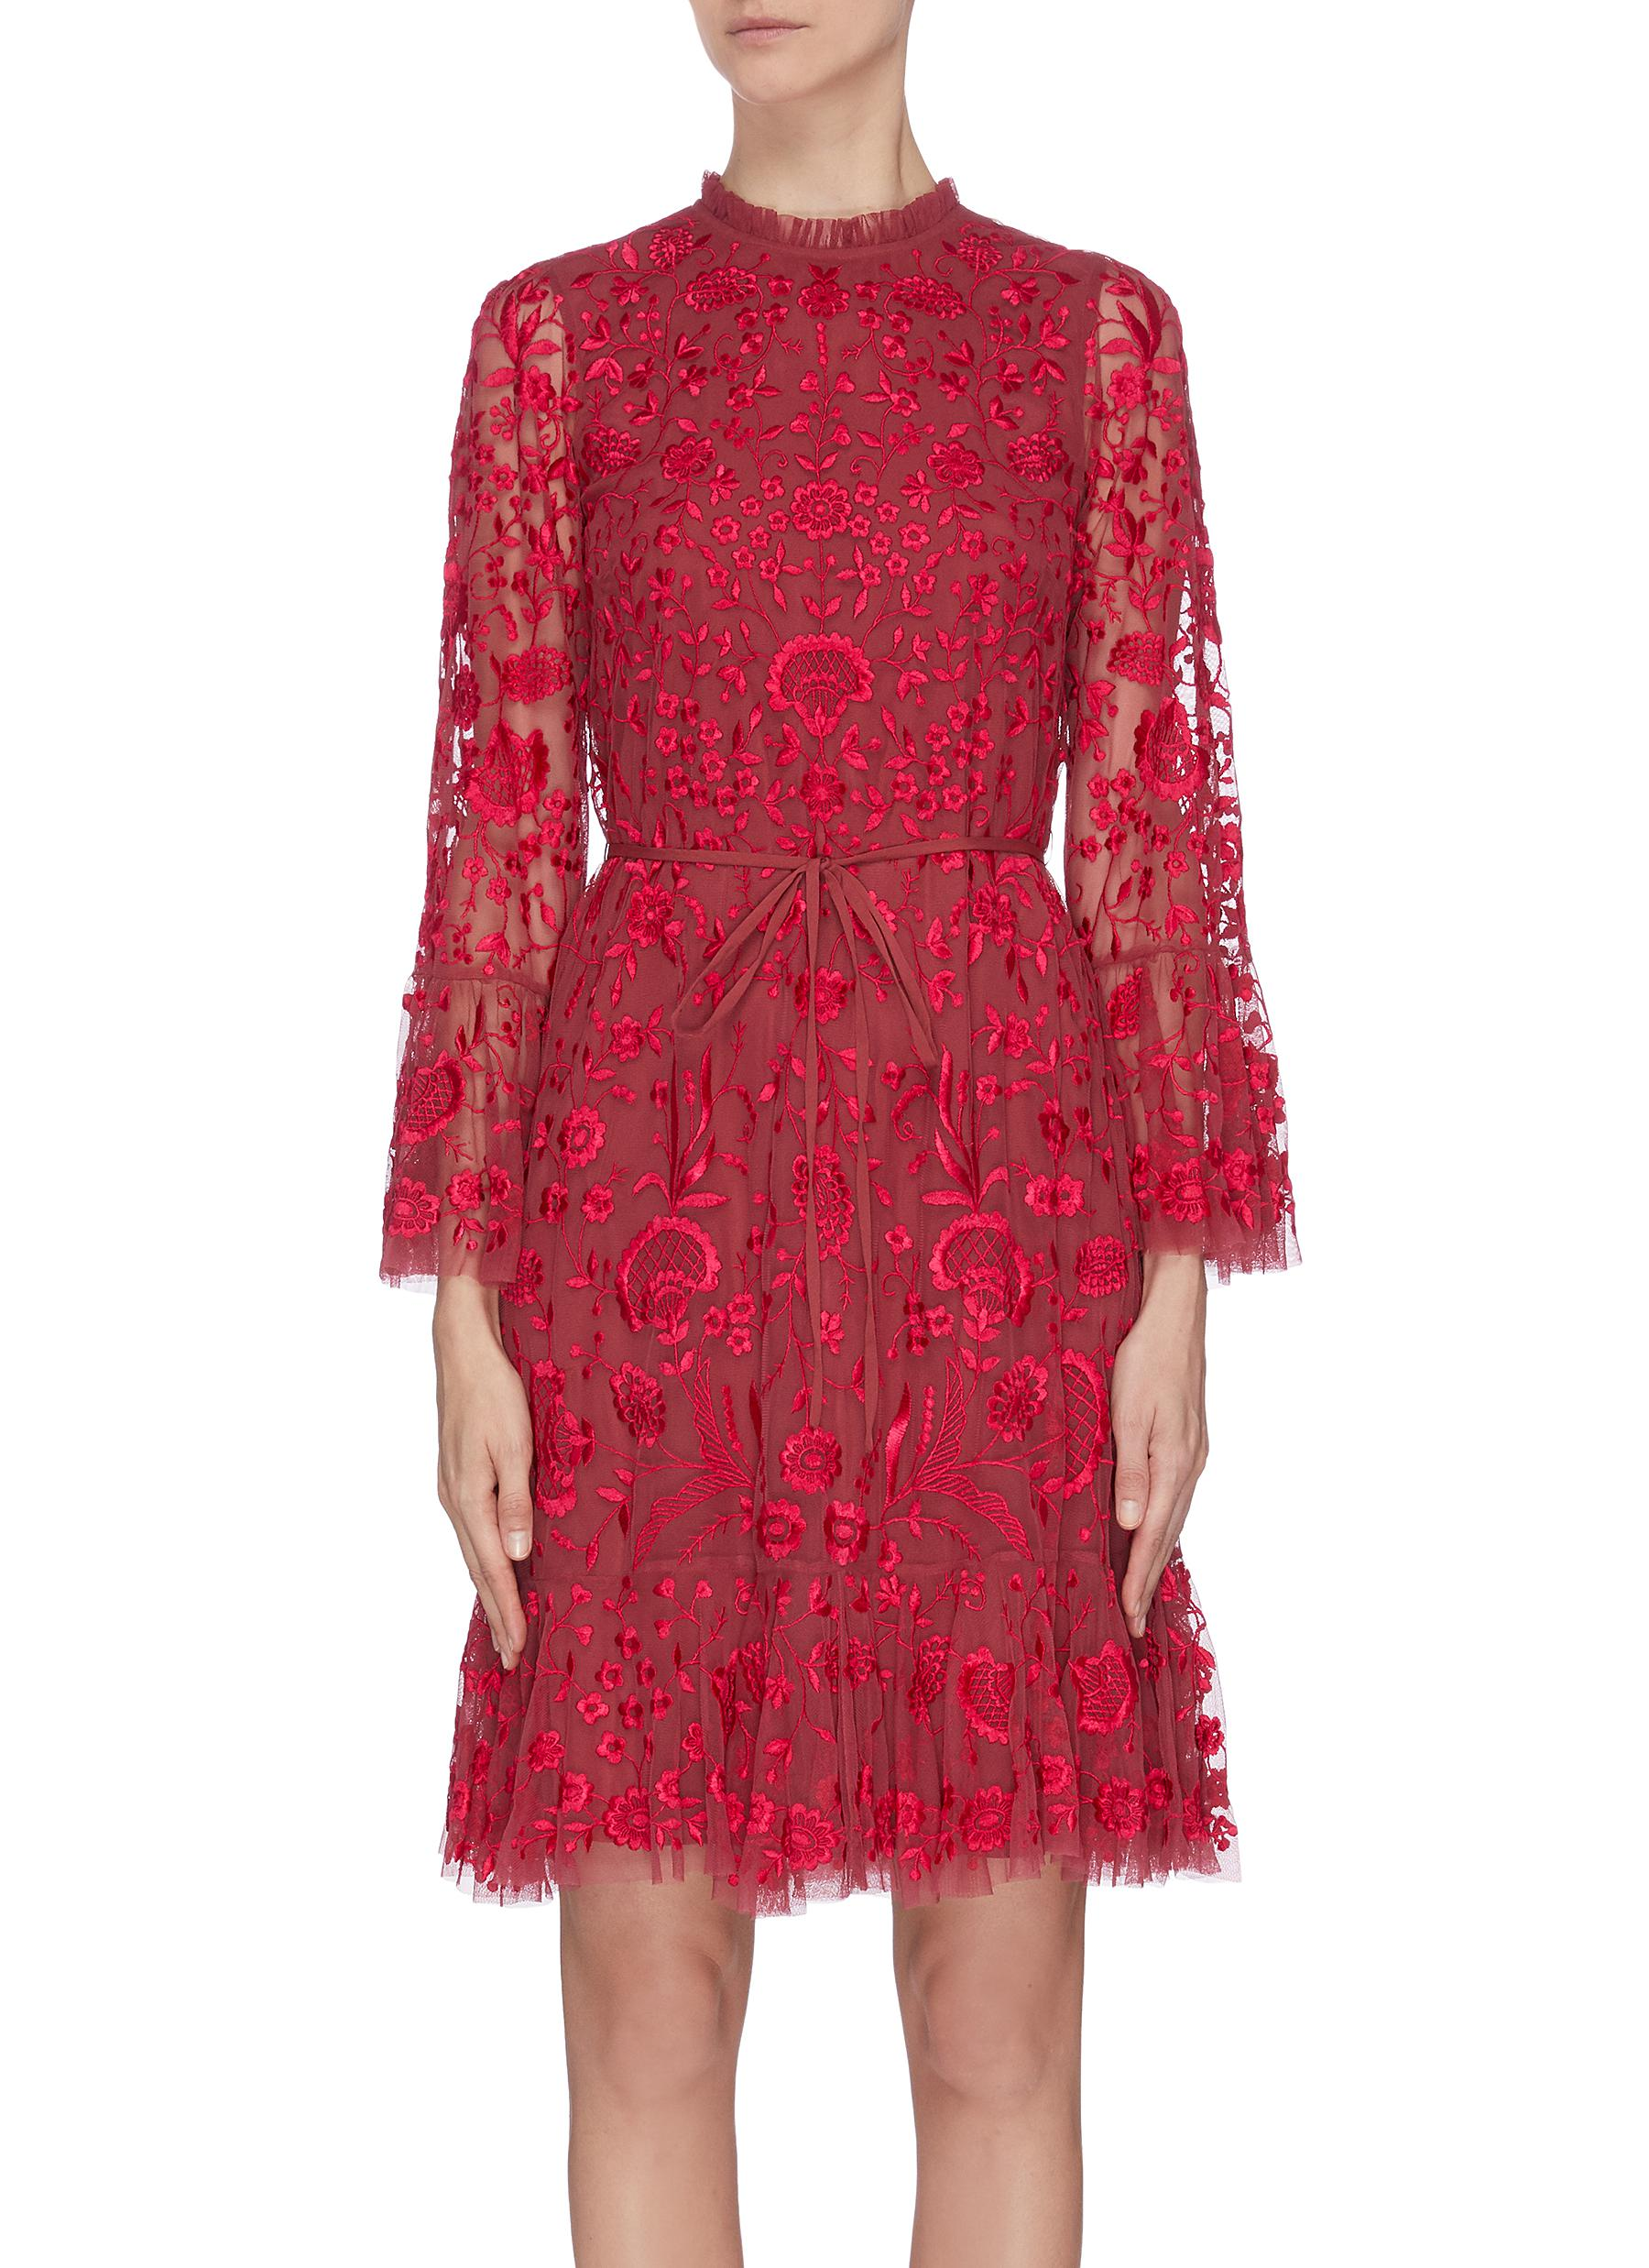 Buy Needle & Thread Dresses 'Demetria' floral embroidery mini dress